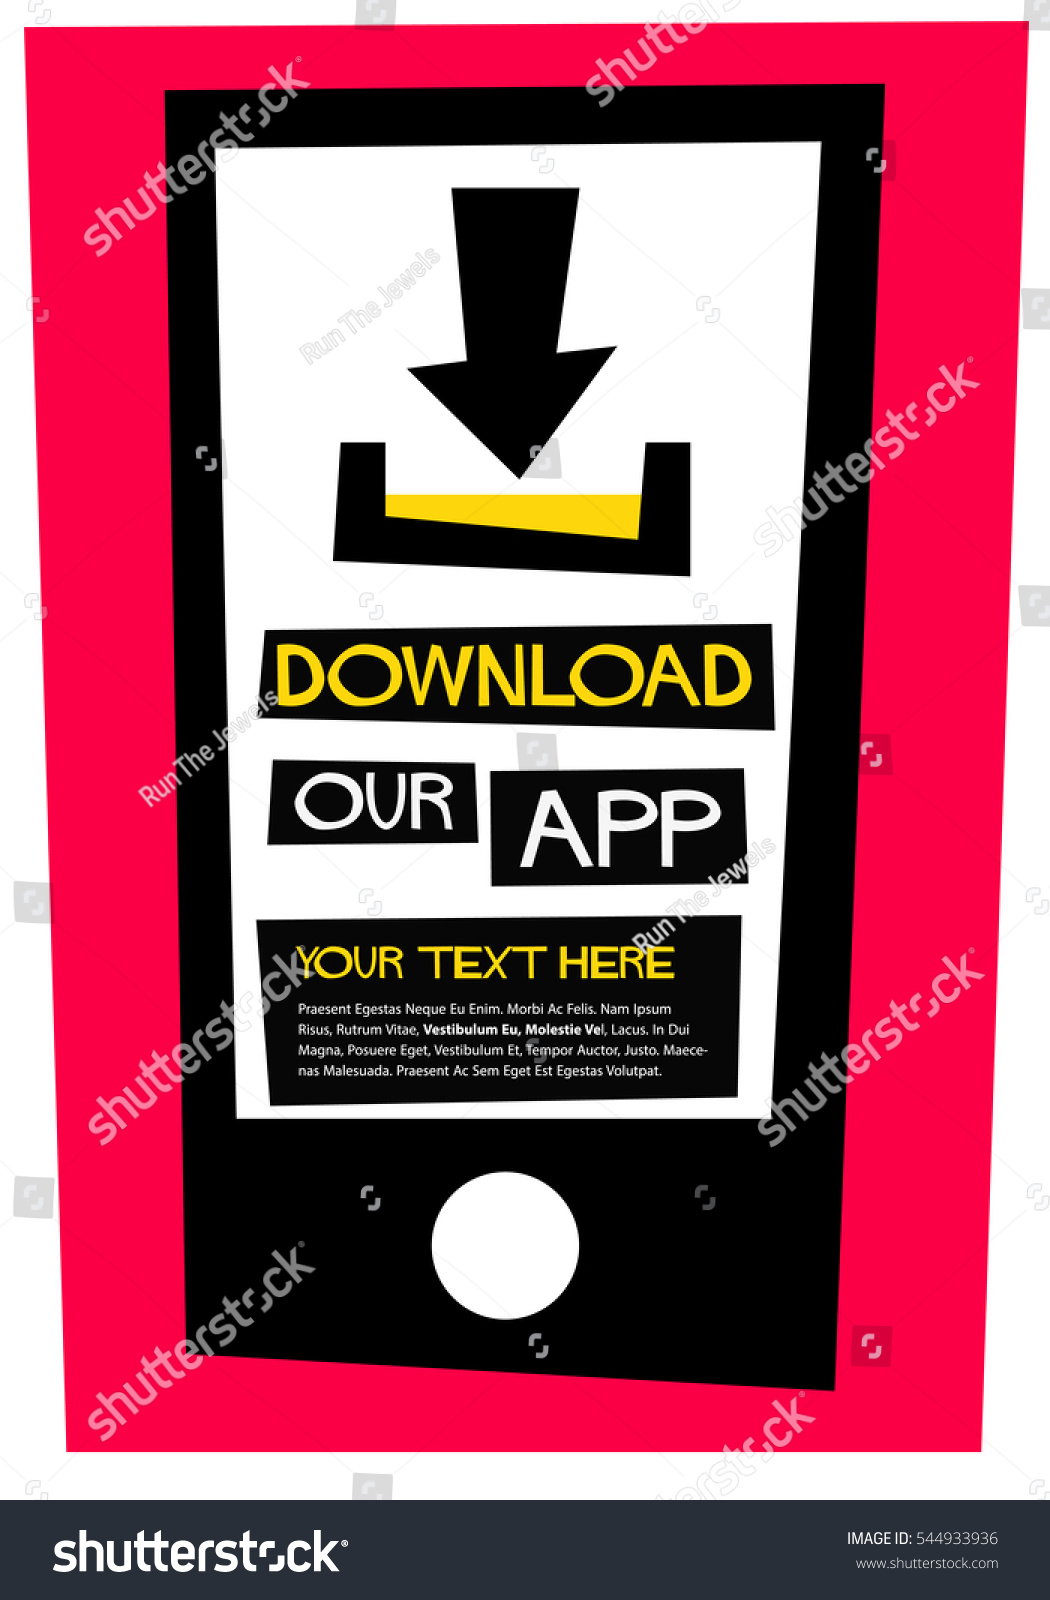 Poster design vector download - Download Our App Flat Style Vector Illustration Quote Poster Design With Text Box Template